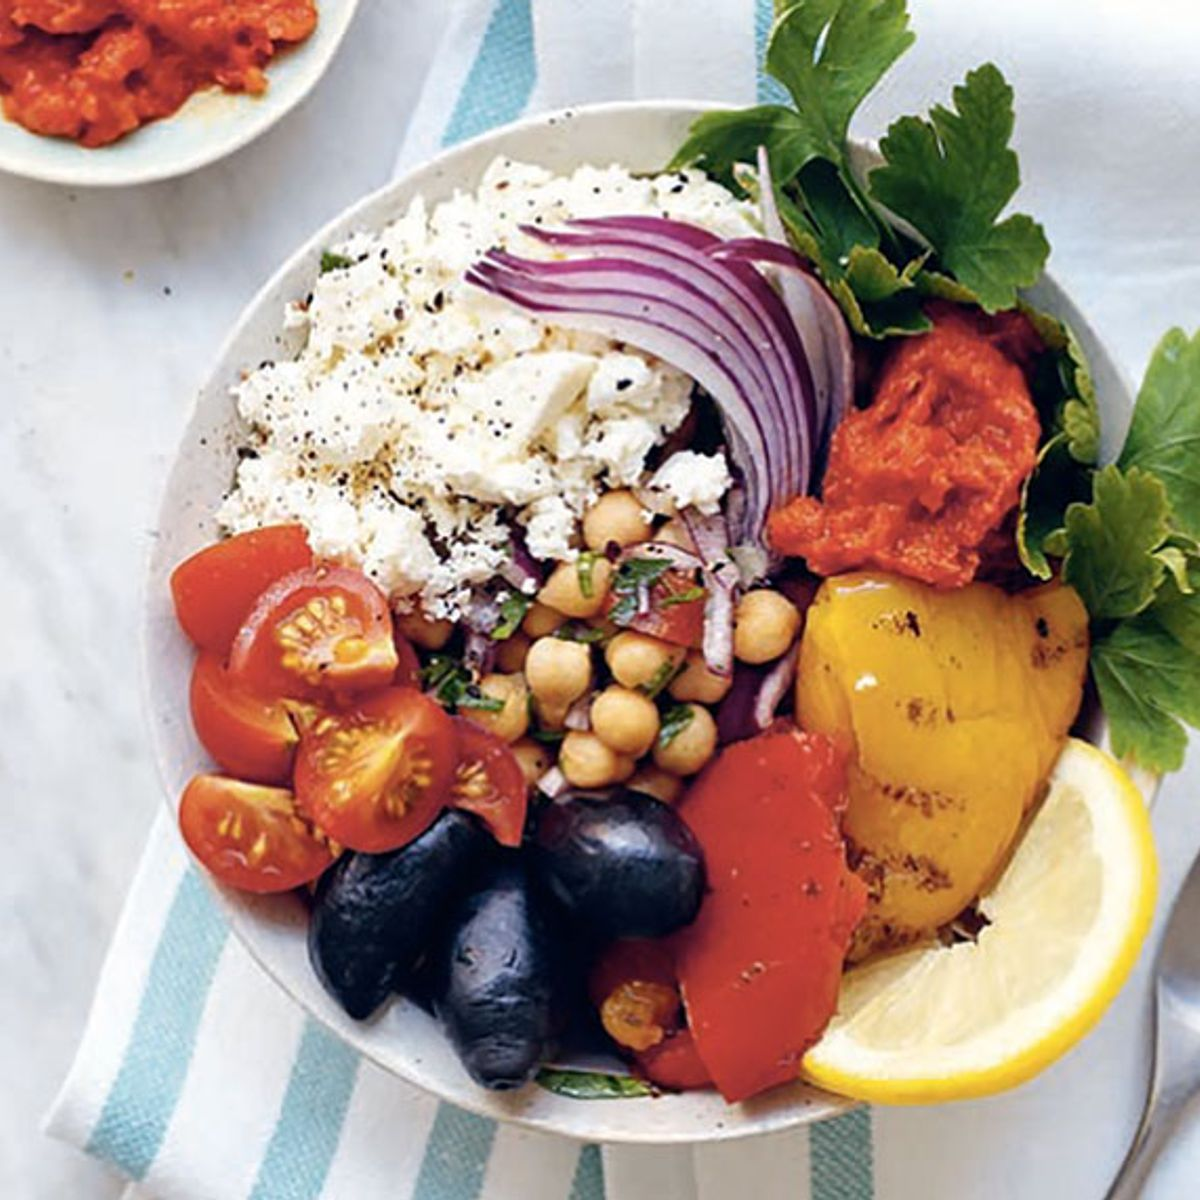 Garnish this Greek poke bowl with parsley, red onion and lemon slices